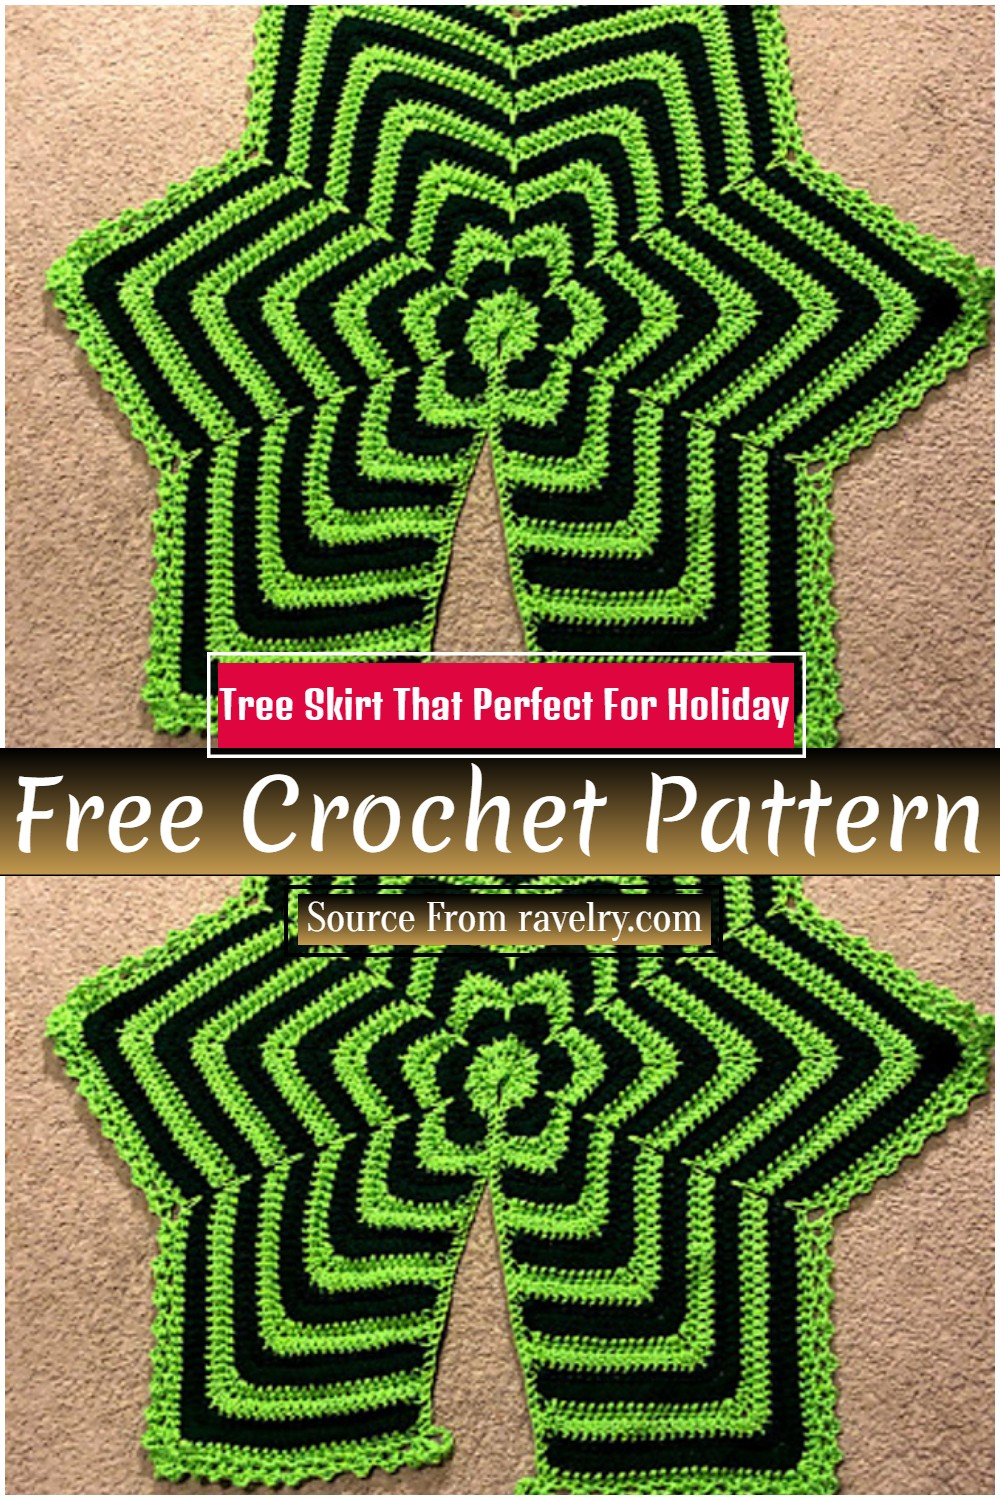 Crochet Tree Skirt Pattern That Perfect For Holiday